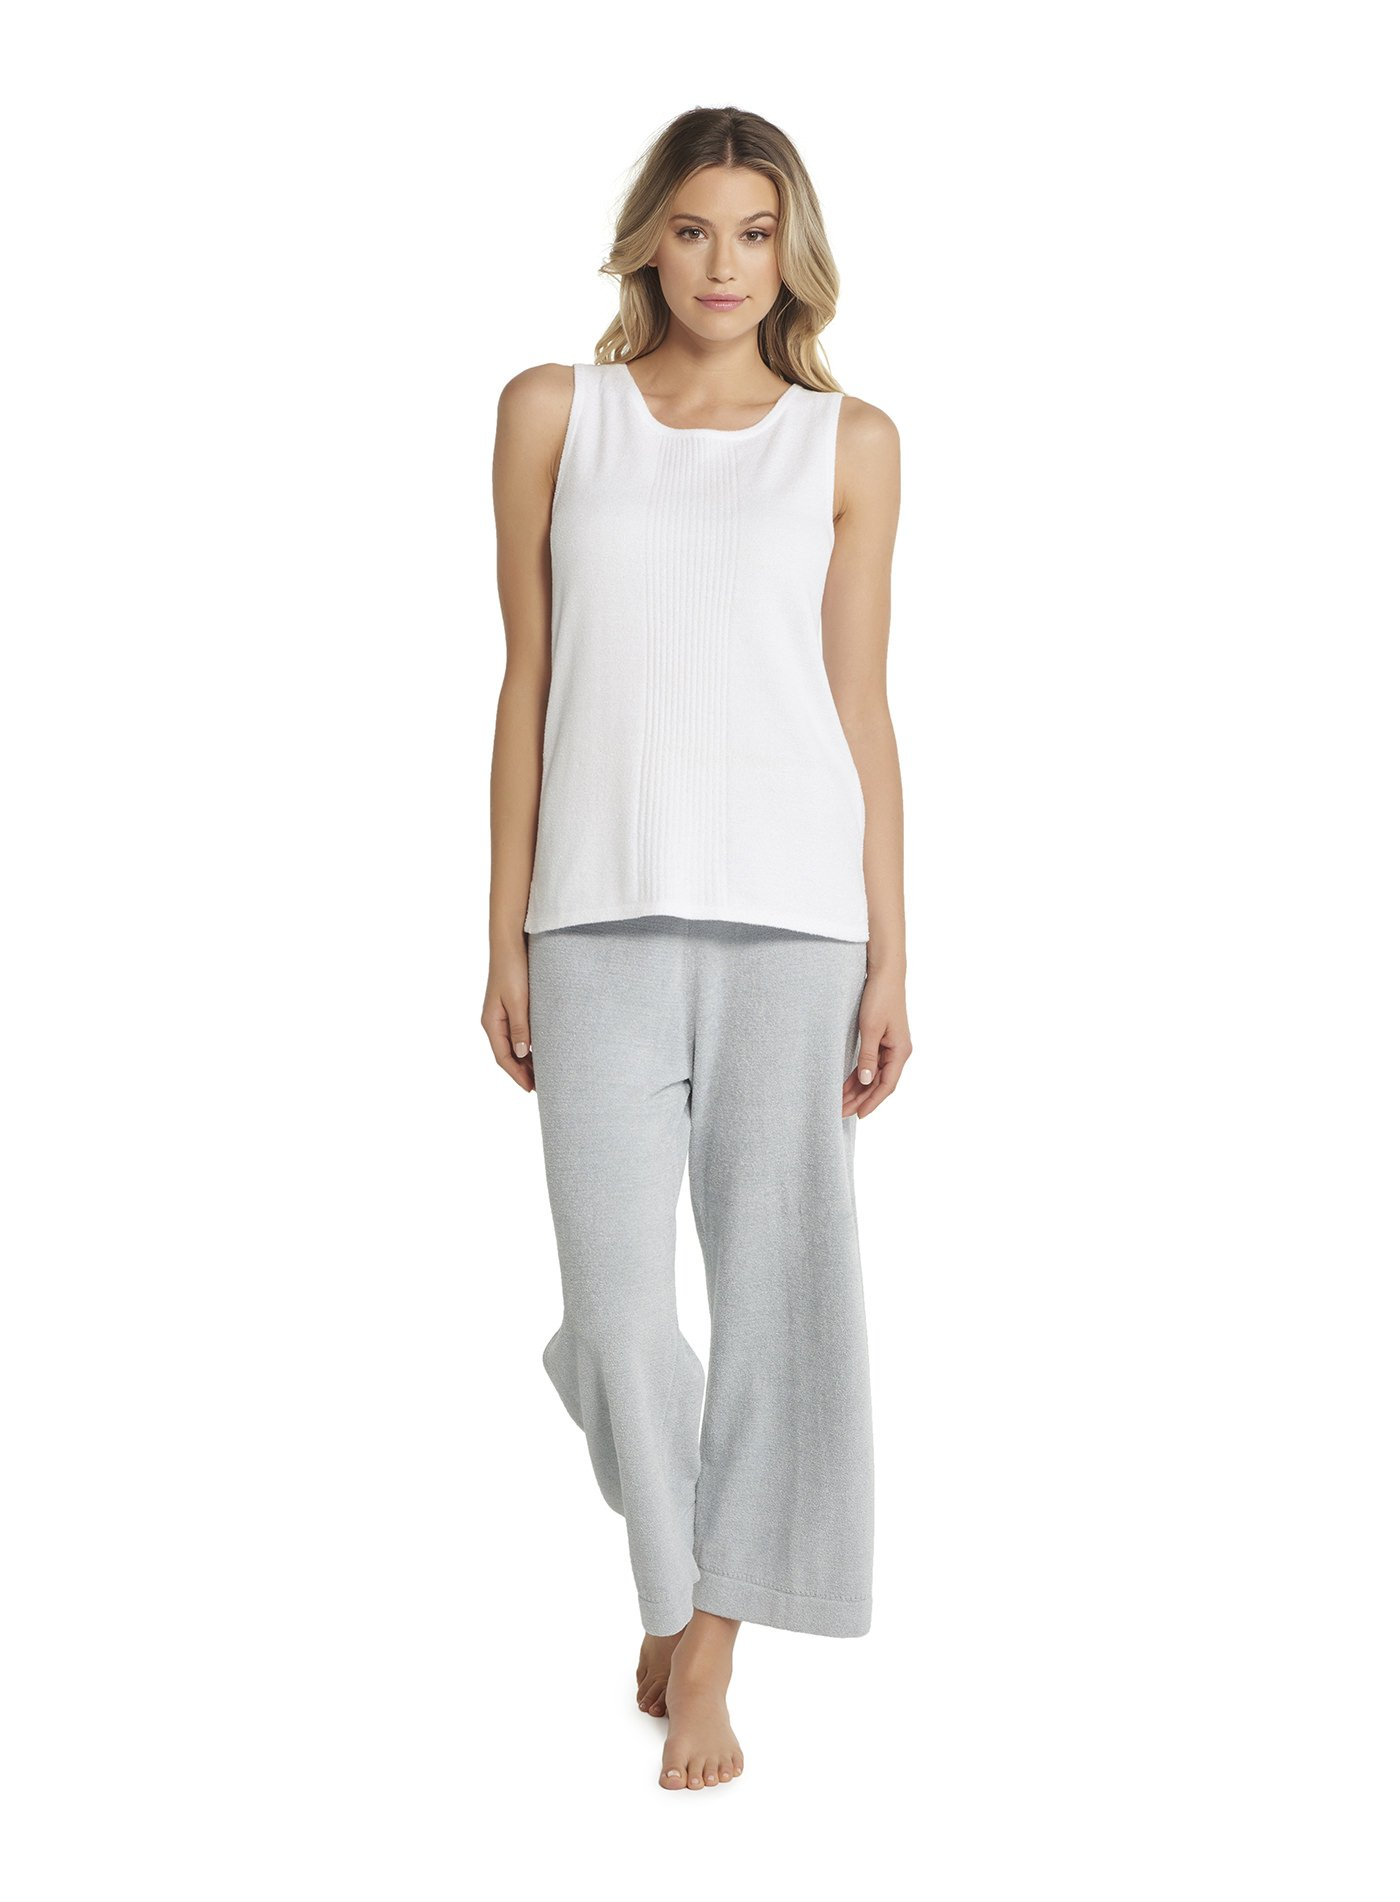 Barefoot Dreams CozyChic Ultra Lite Sleeveless Boat Neck Tee, Sea Salt, X-Small by Barefoot Dreams